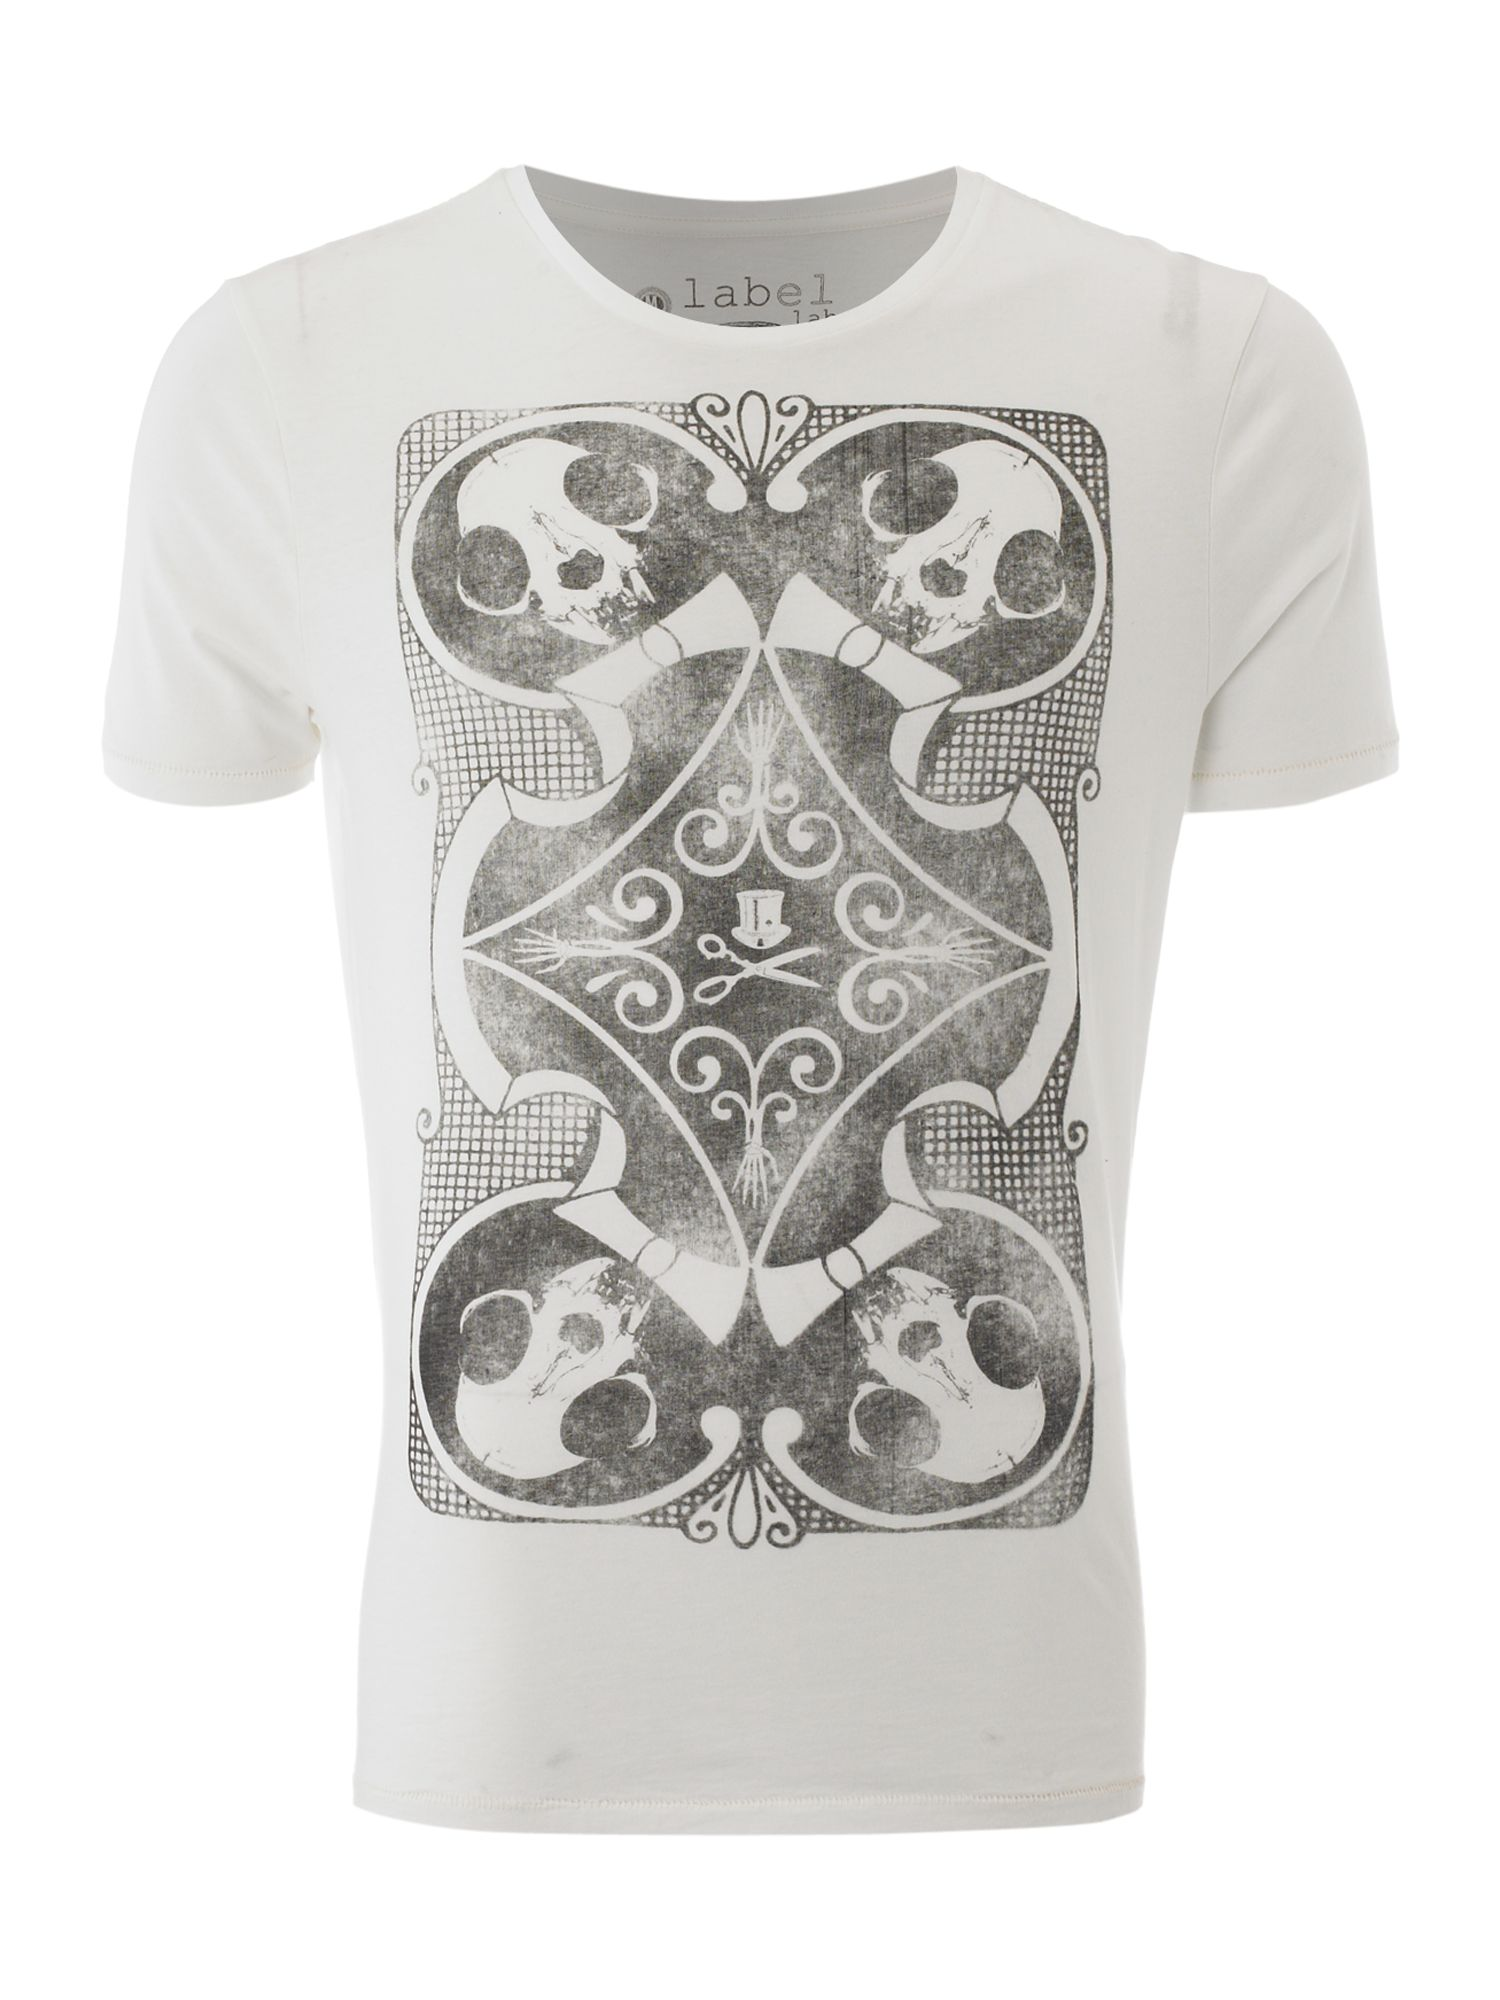 Label Lab Skull card graphic T-shirt - Off White product image